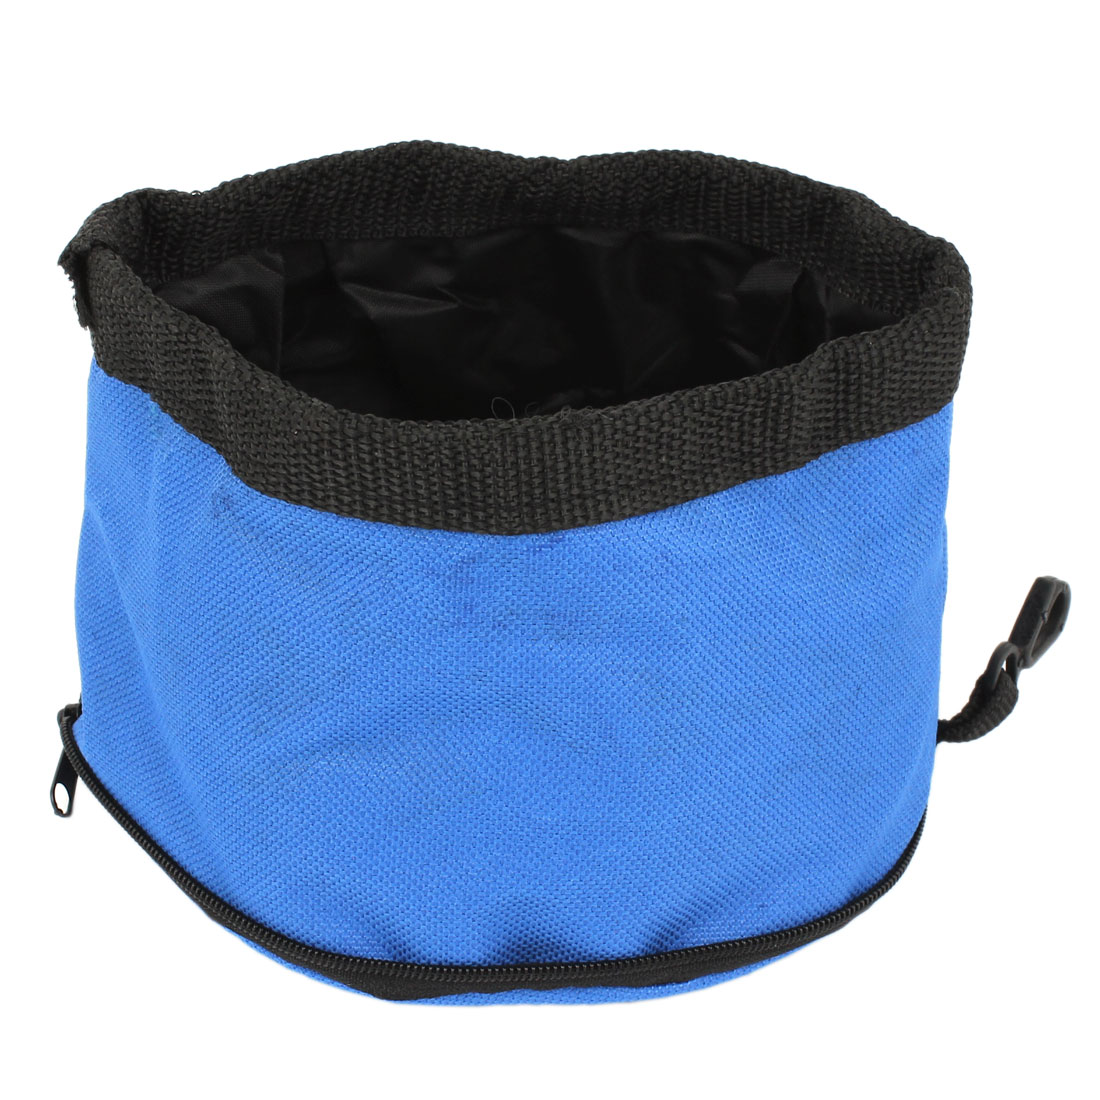 Camping Travel Pet Dog Puppy Folded Zip Up Food Dish Bowl Blue 15cm Dia